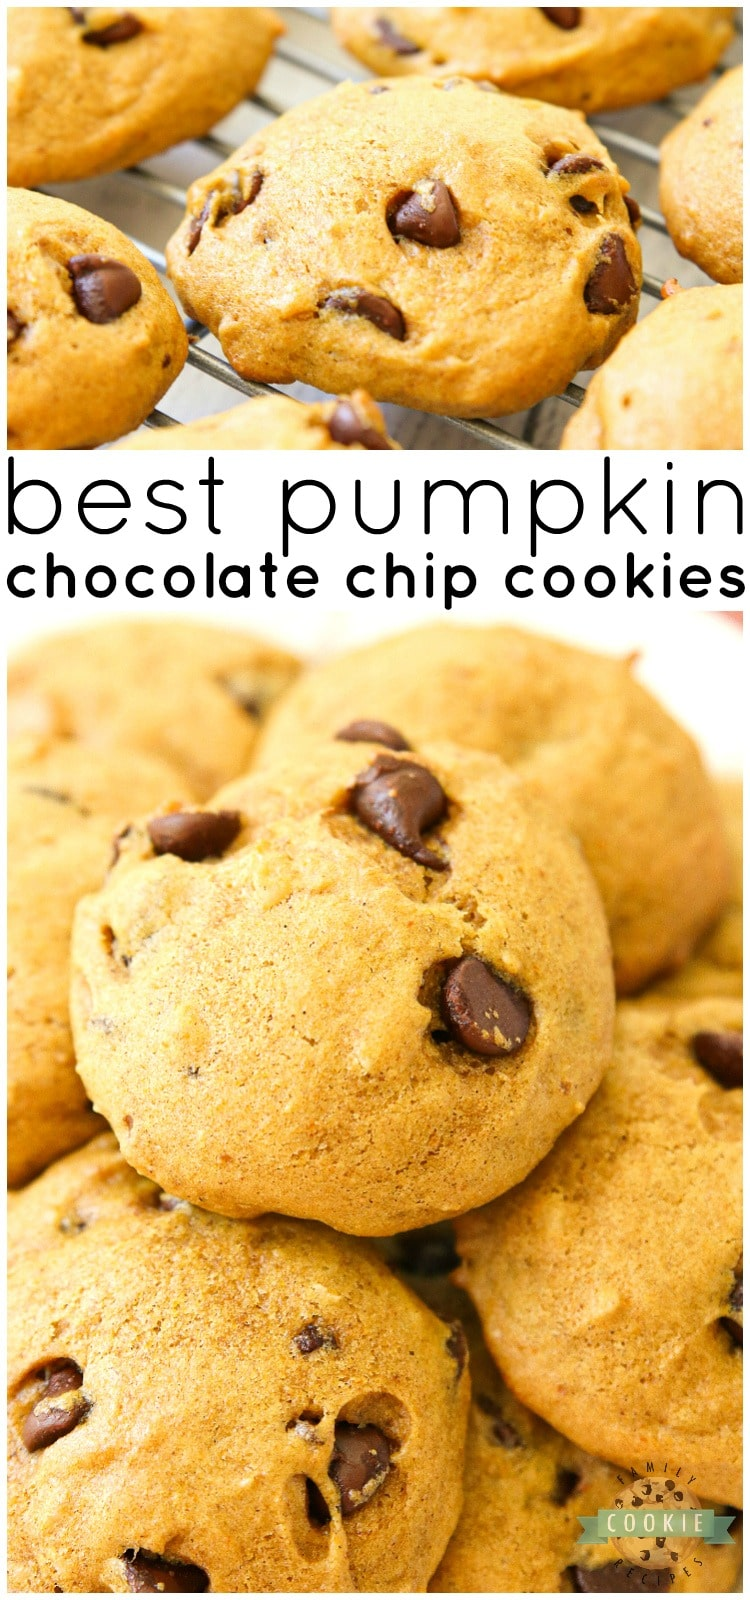 Delicious Pumpkin Chocolate Chip Cookies are incredible pillows of soft and chewy cookie goodness! Pillowy soft chocolate chip cookies straight from the oven are made even better with the addition of pumpkin. via @familycookierecipes